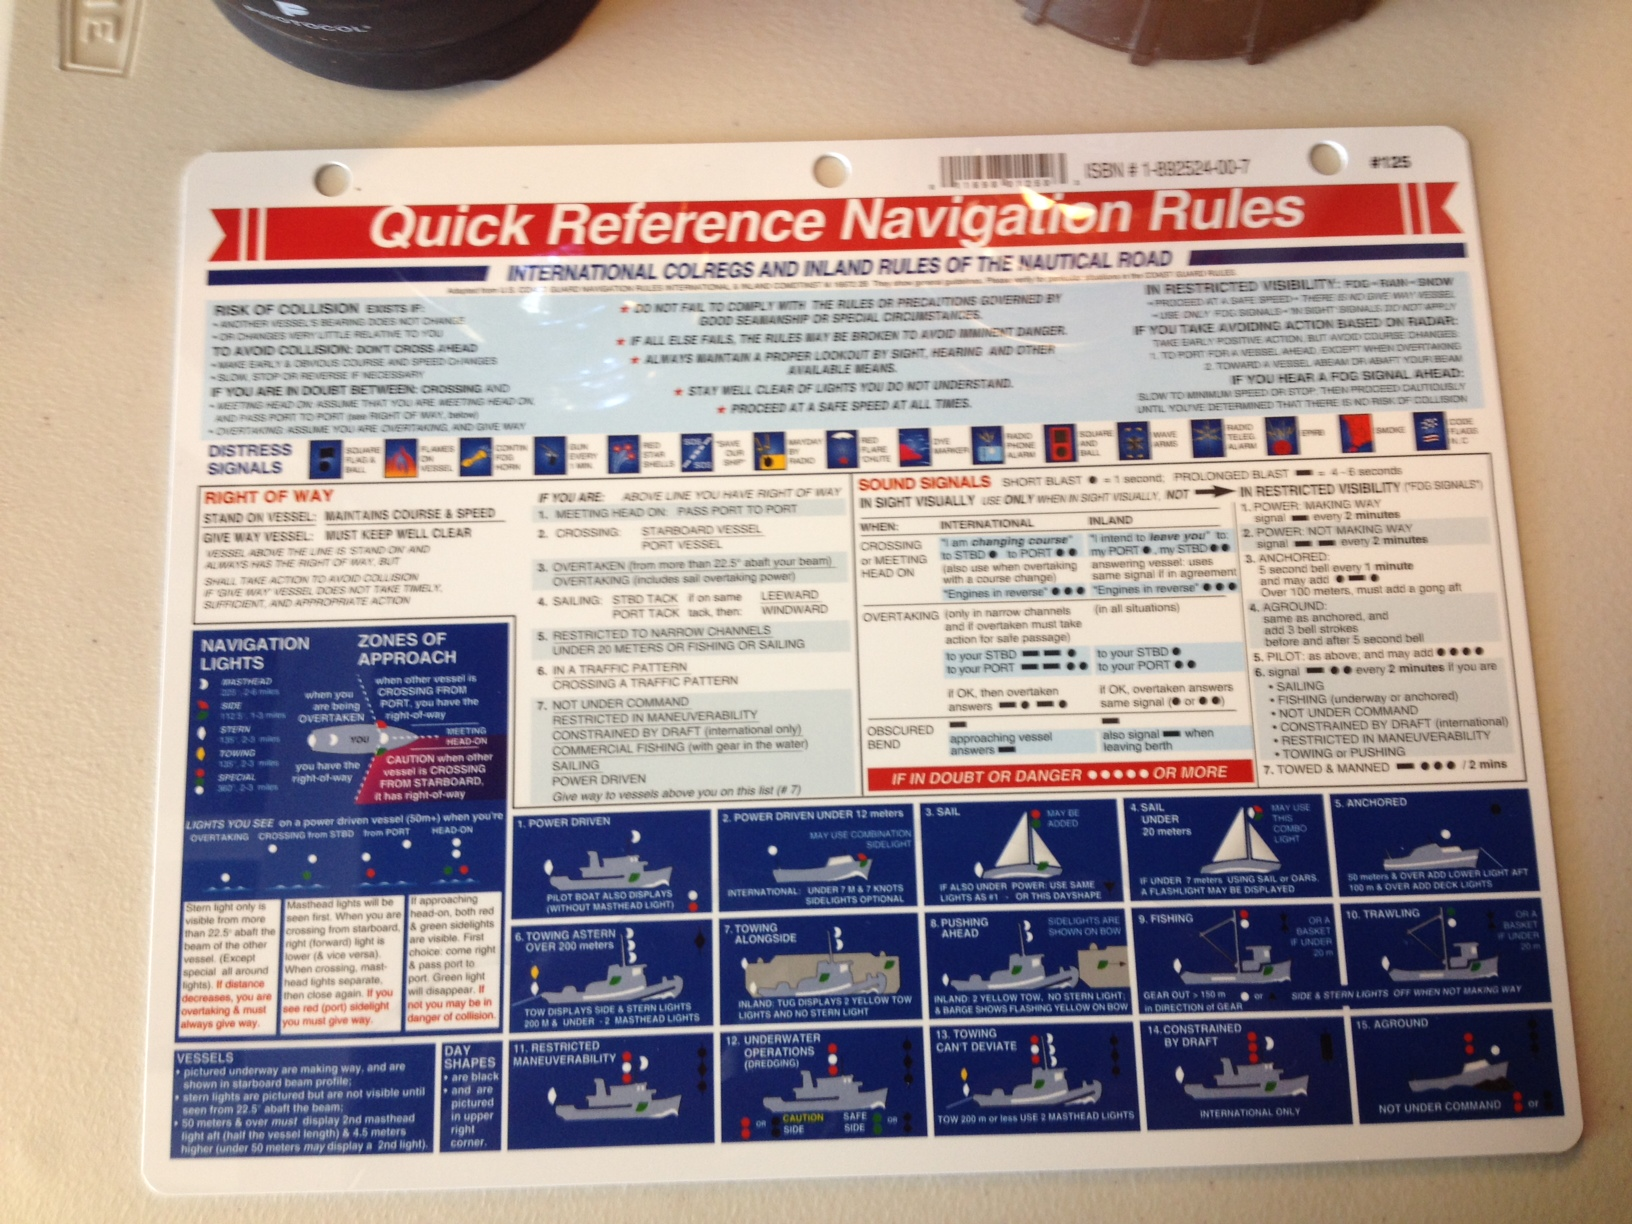 Davis 125 Navigation Rules Quick Reference Card Graphically Summarized Easy Read